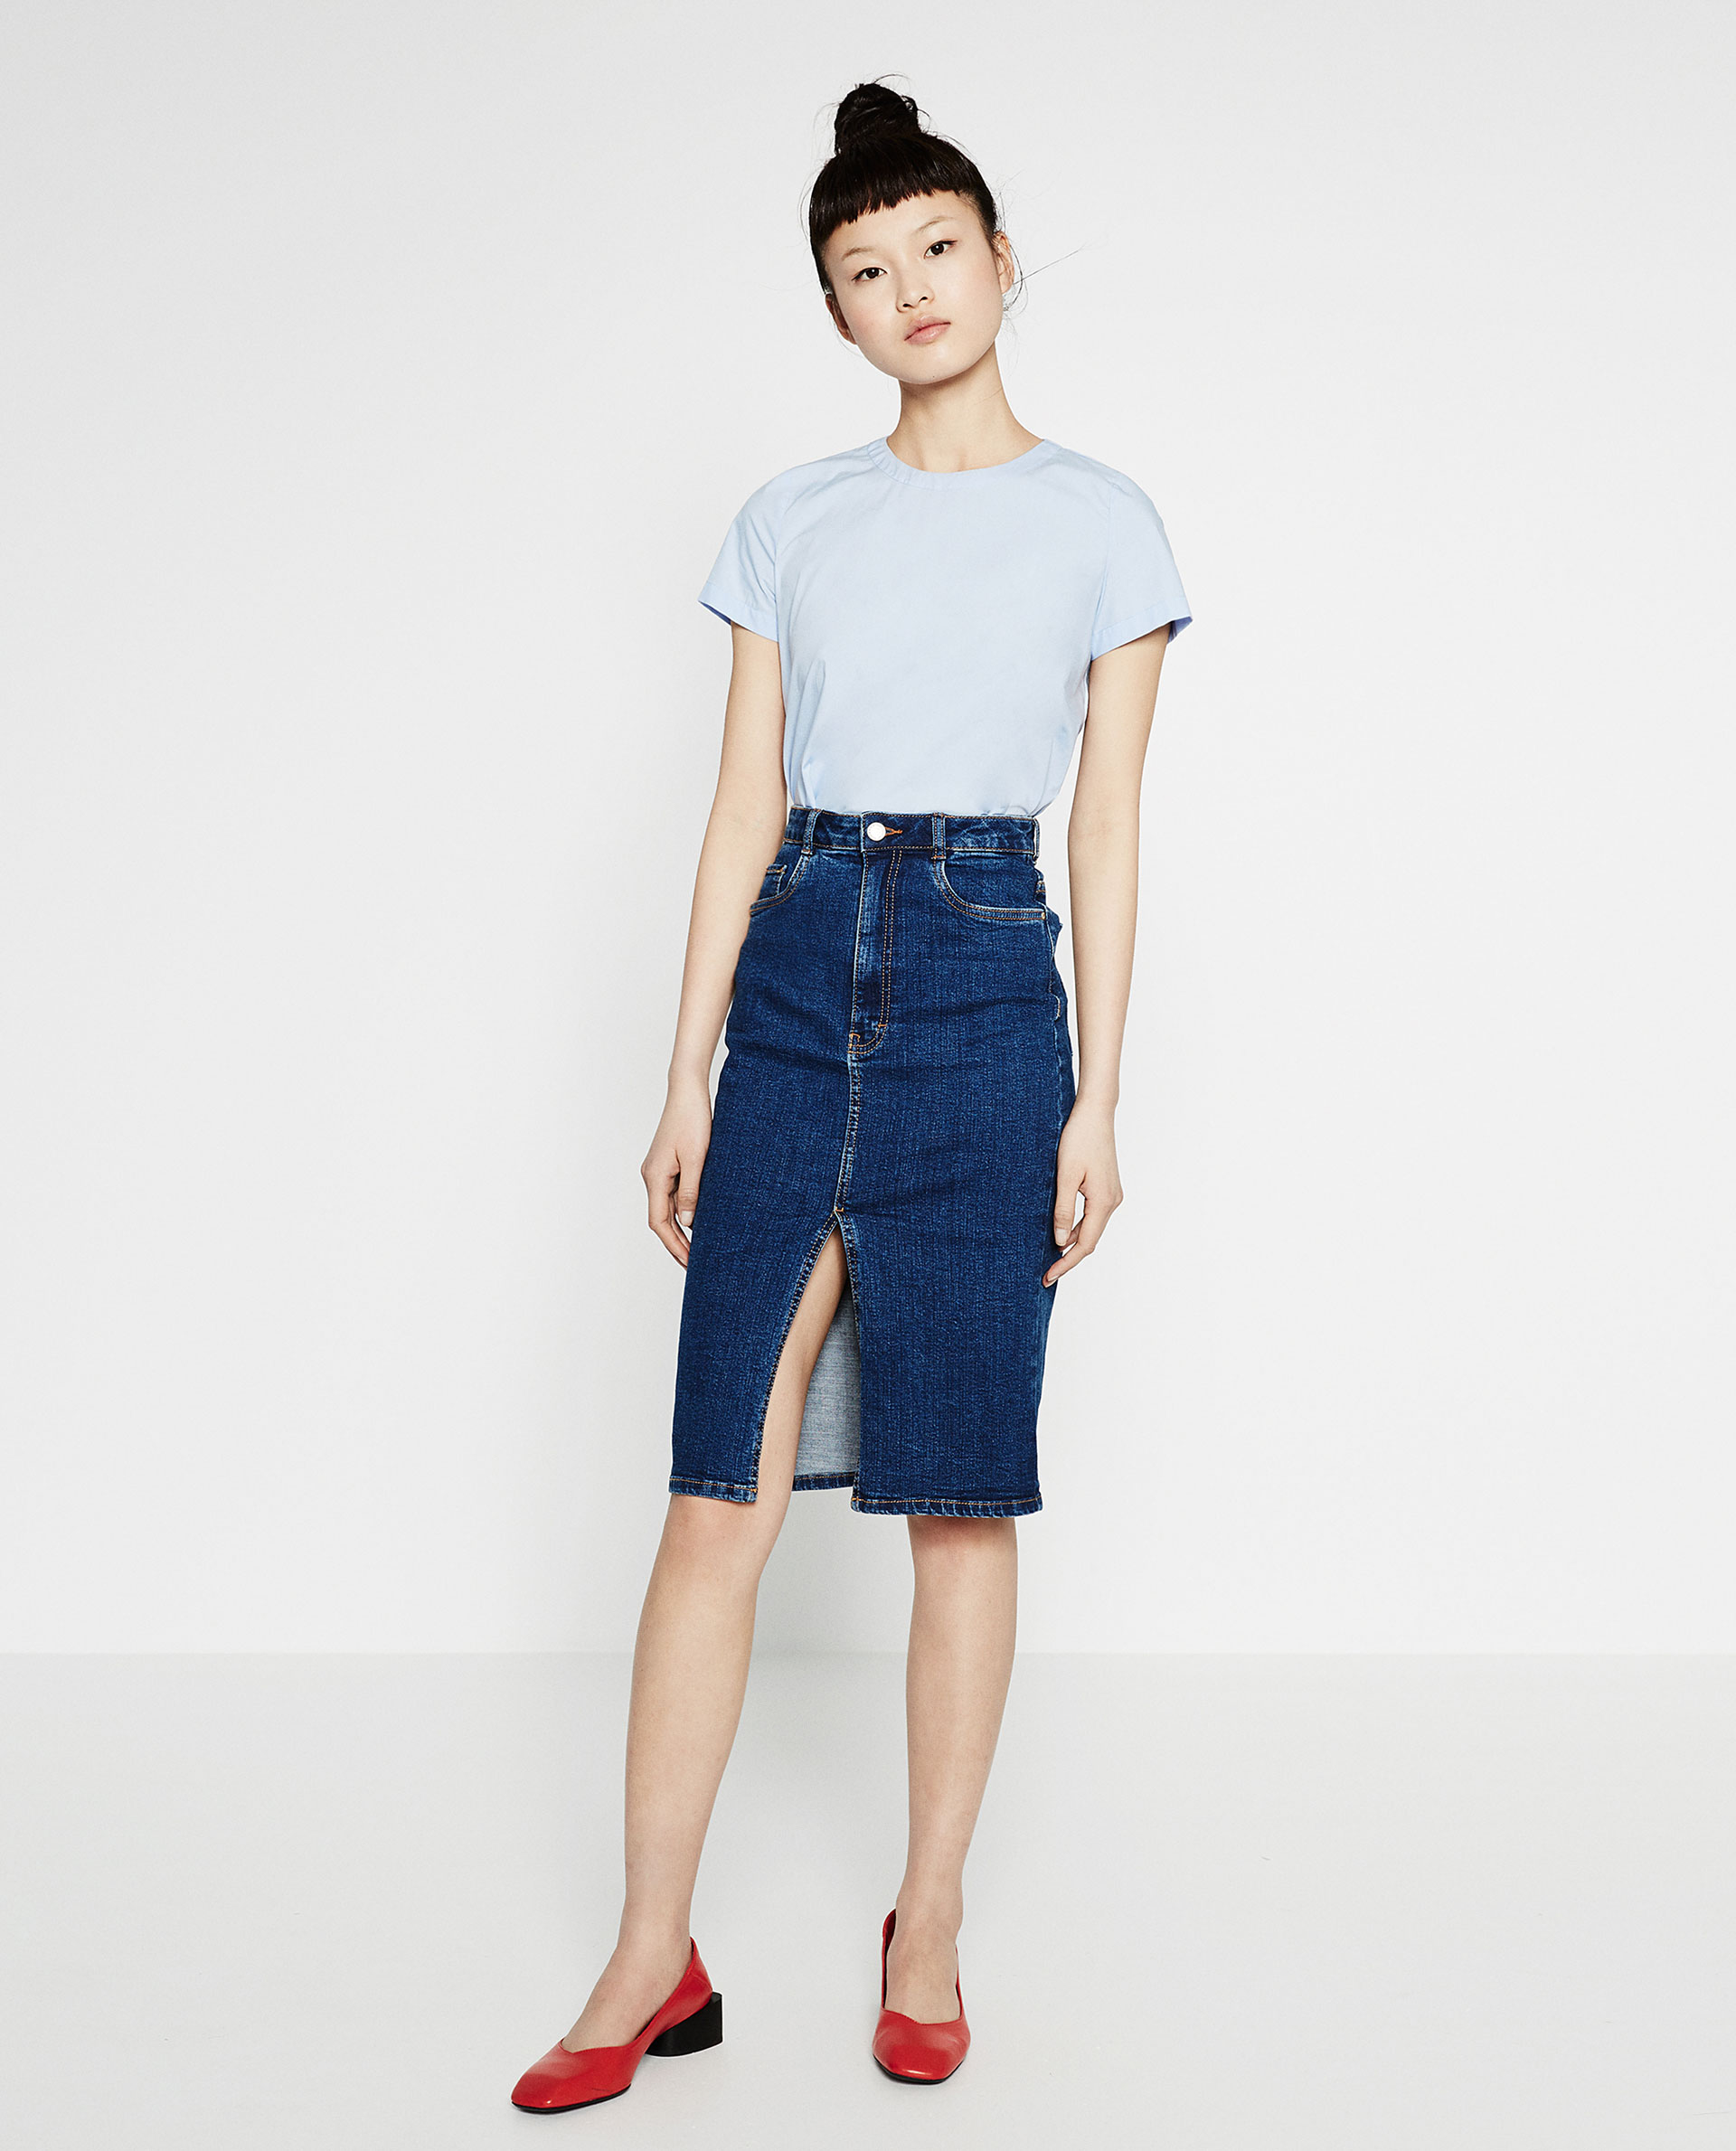 zara, denim skirt, midi skirt, pencil skirt, basic top, basic tshirt